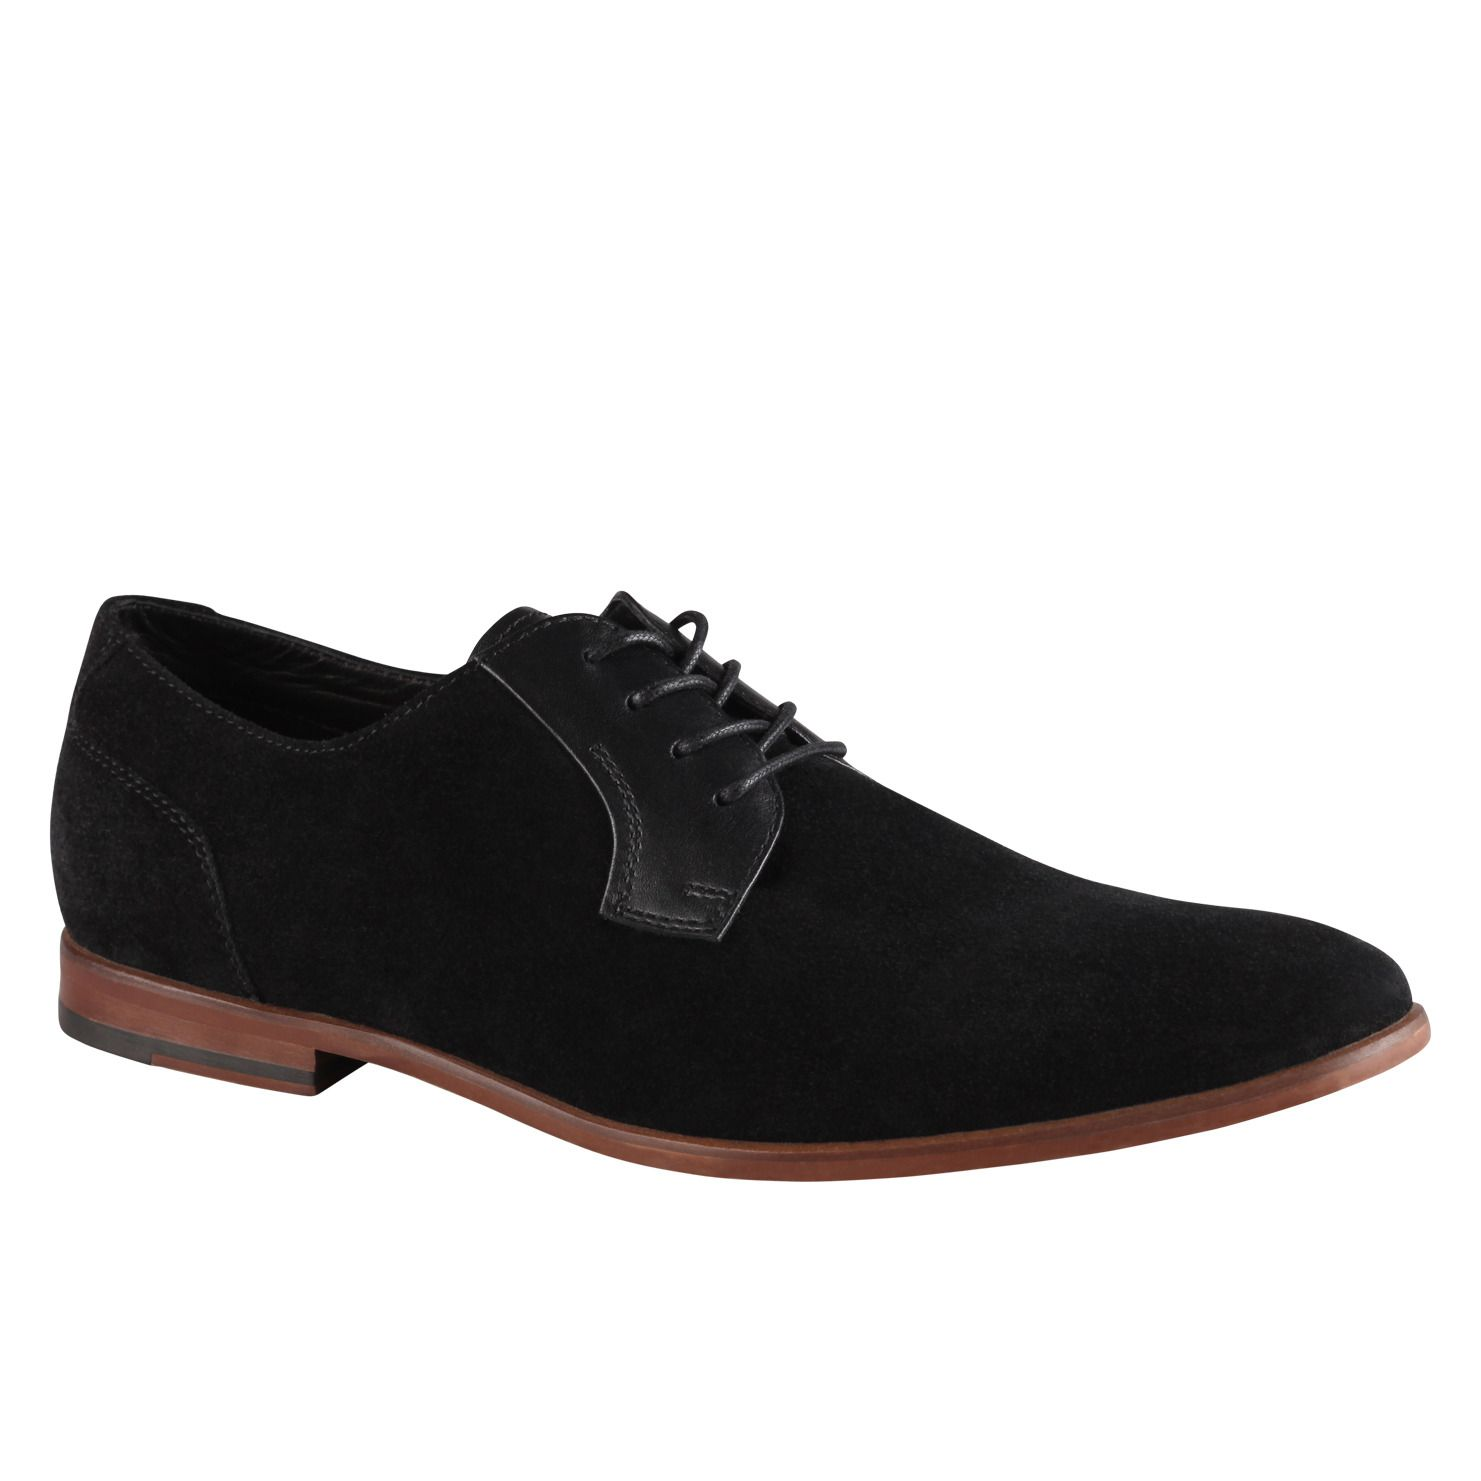 WAYLIN - men's dress lace-ups shoes for sale at ALDO Shoes. (super